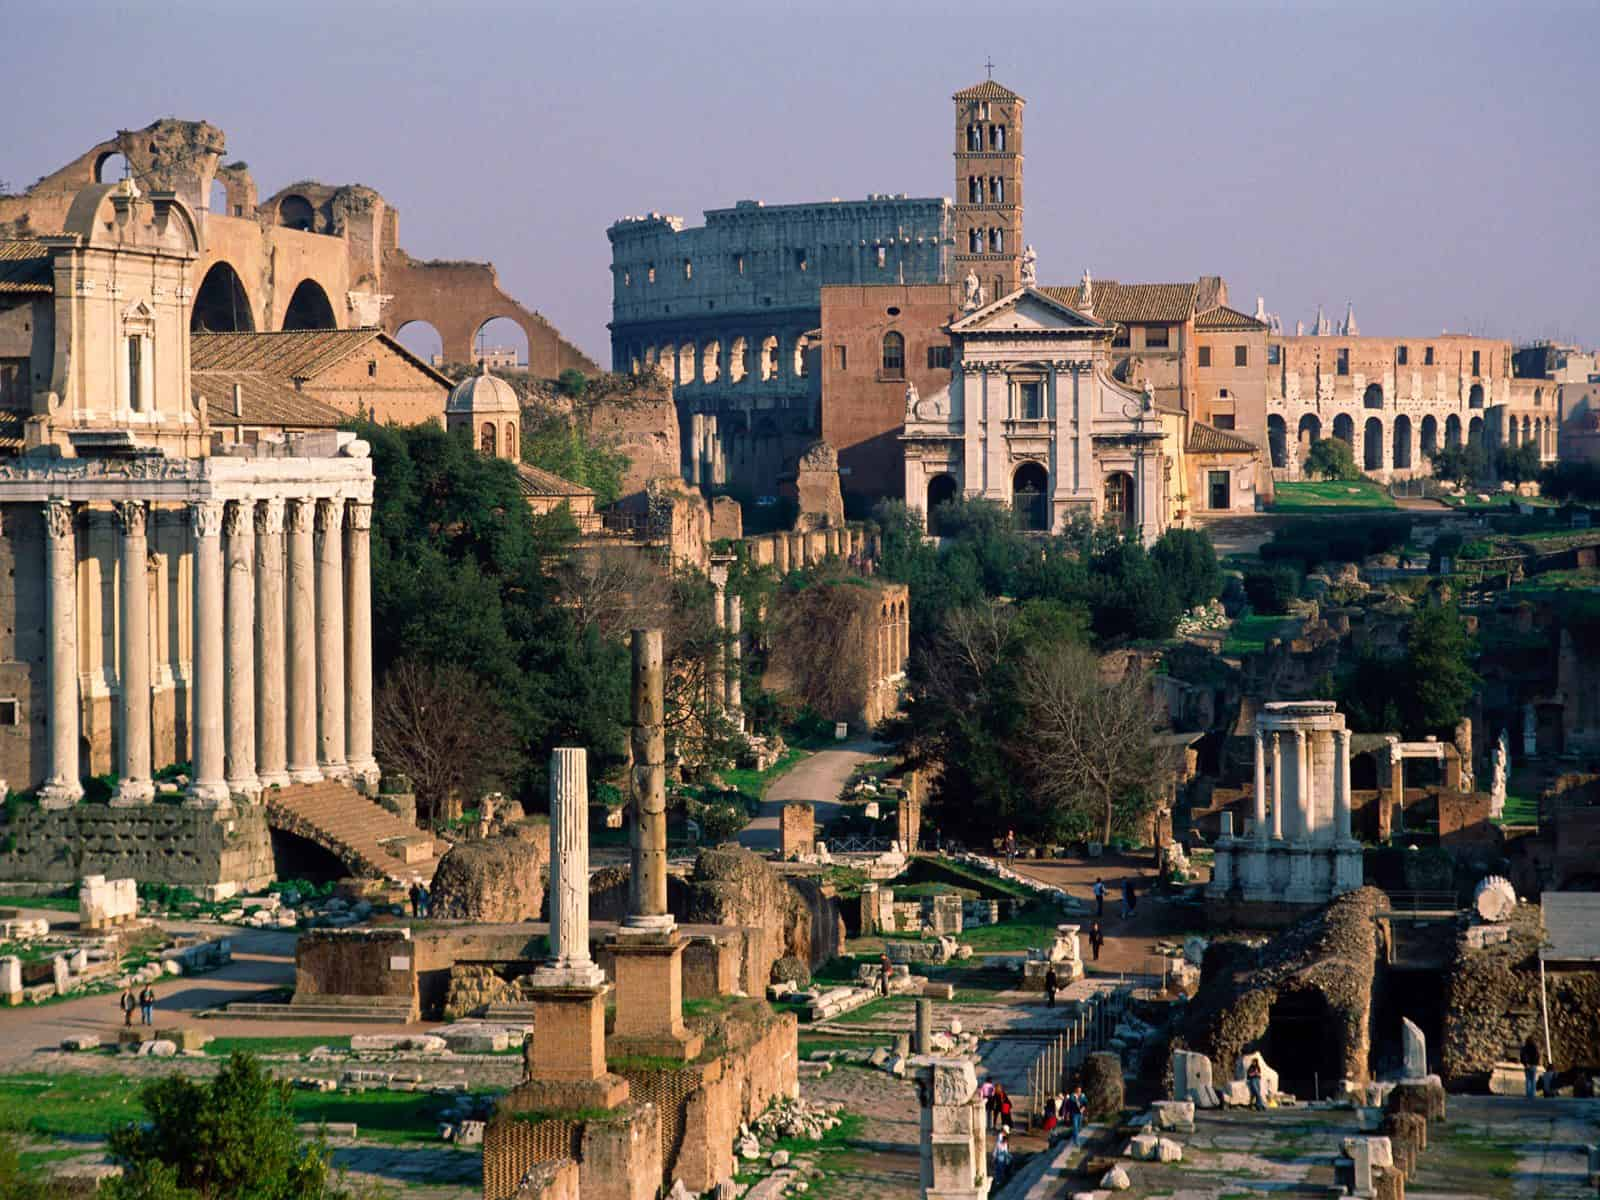 roman forum rome italy Where Would I Go For A £1,000 Grand Adventure Trip?